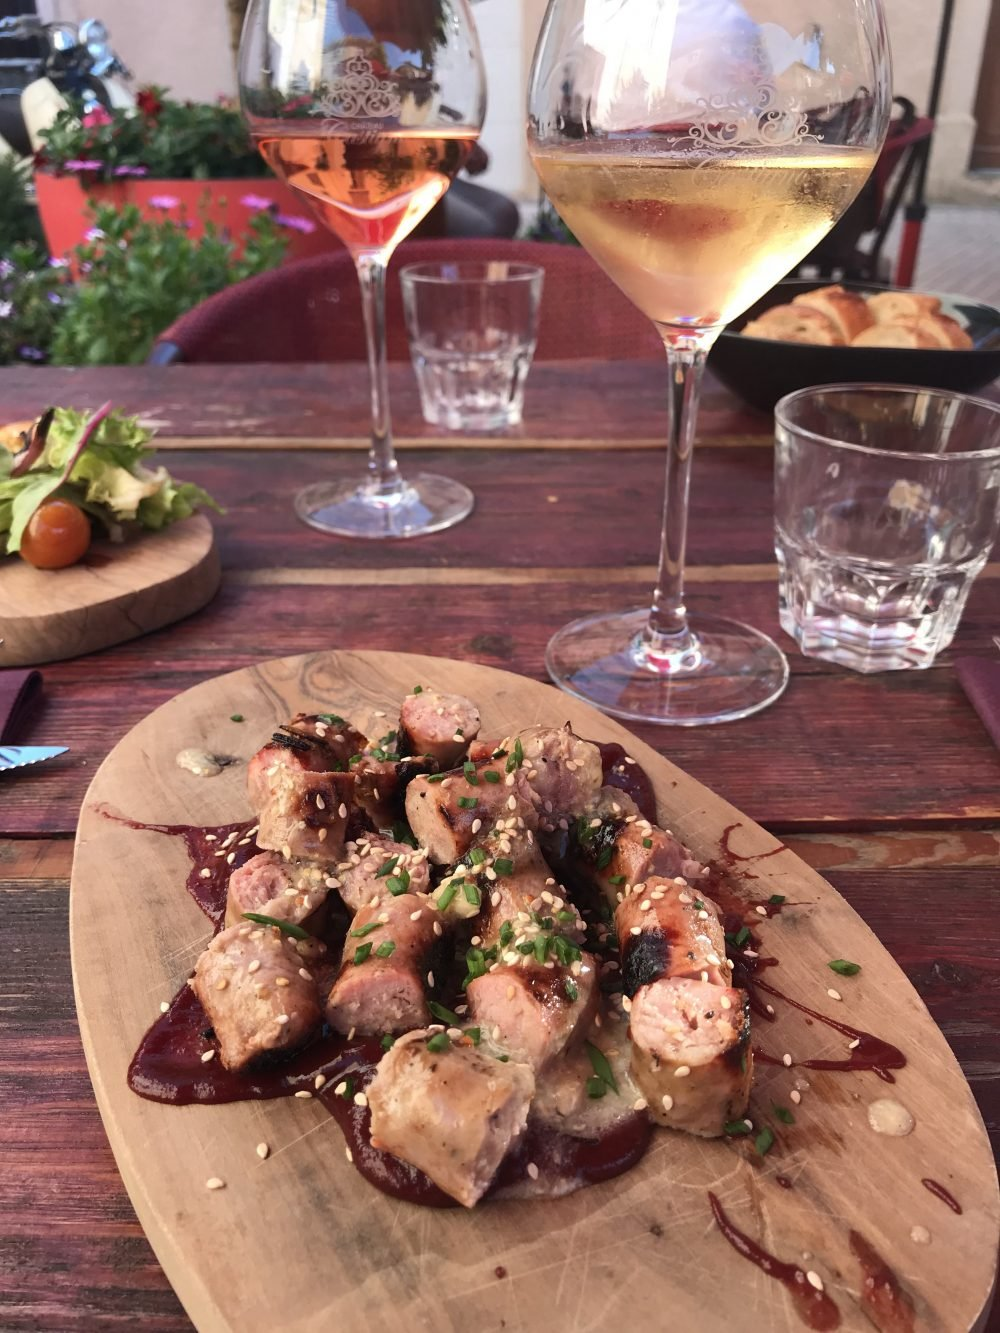 small sausage bites on a wooden board next to glasses of wine